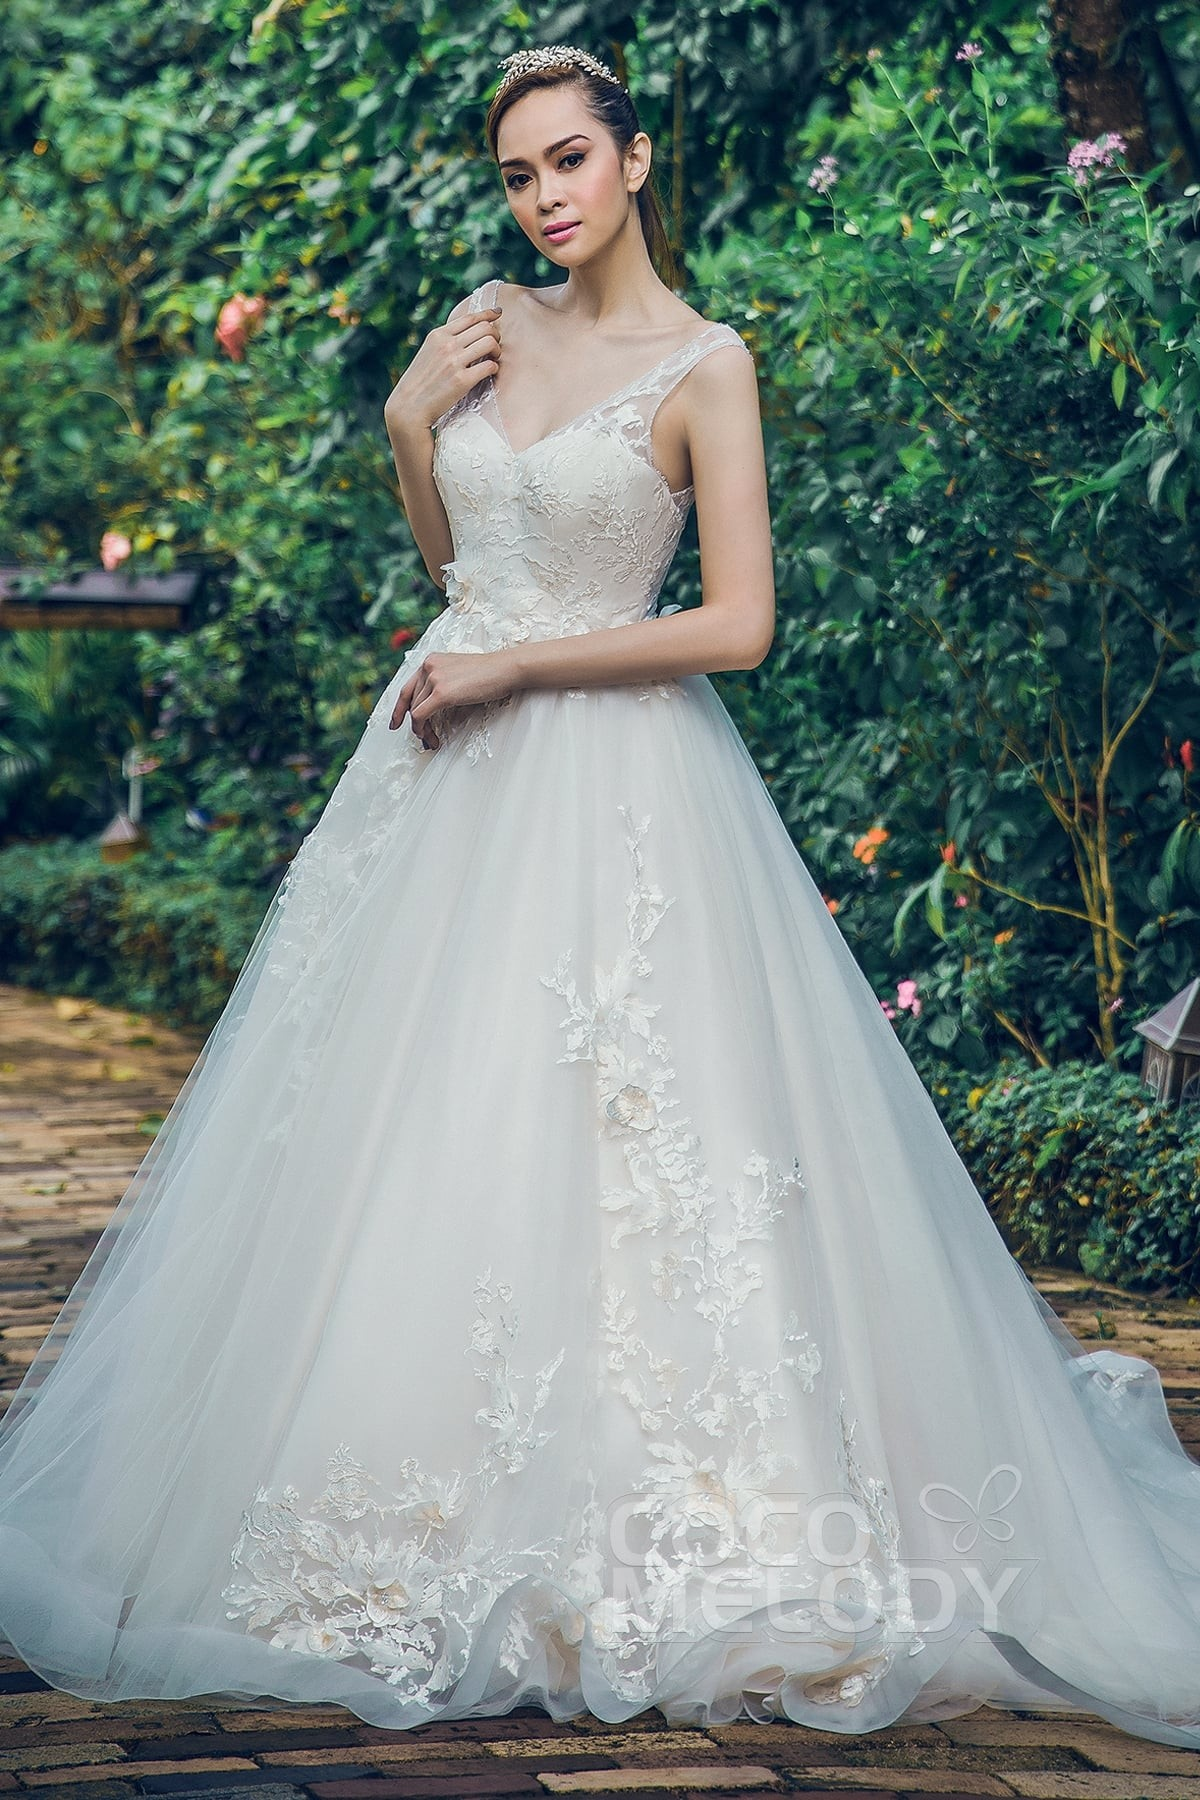 Cocomelody: Wedding Dresses Online & In-store – Customized for You ...